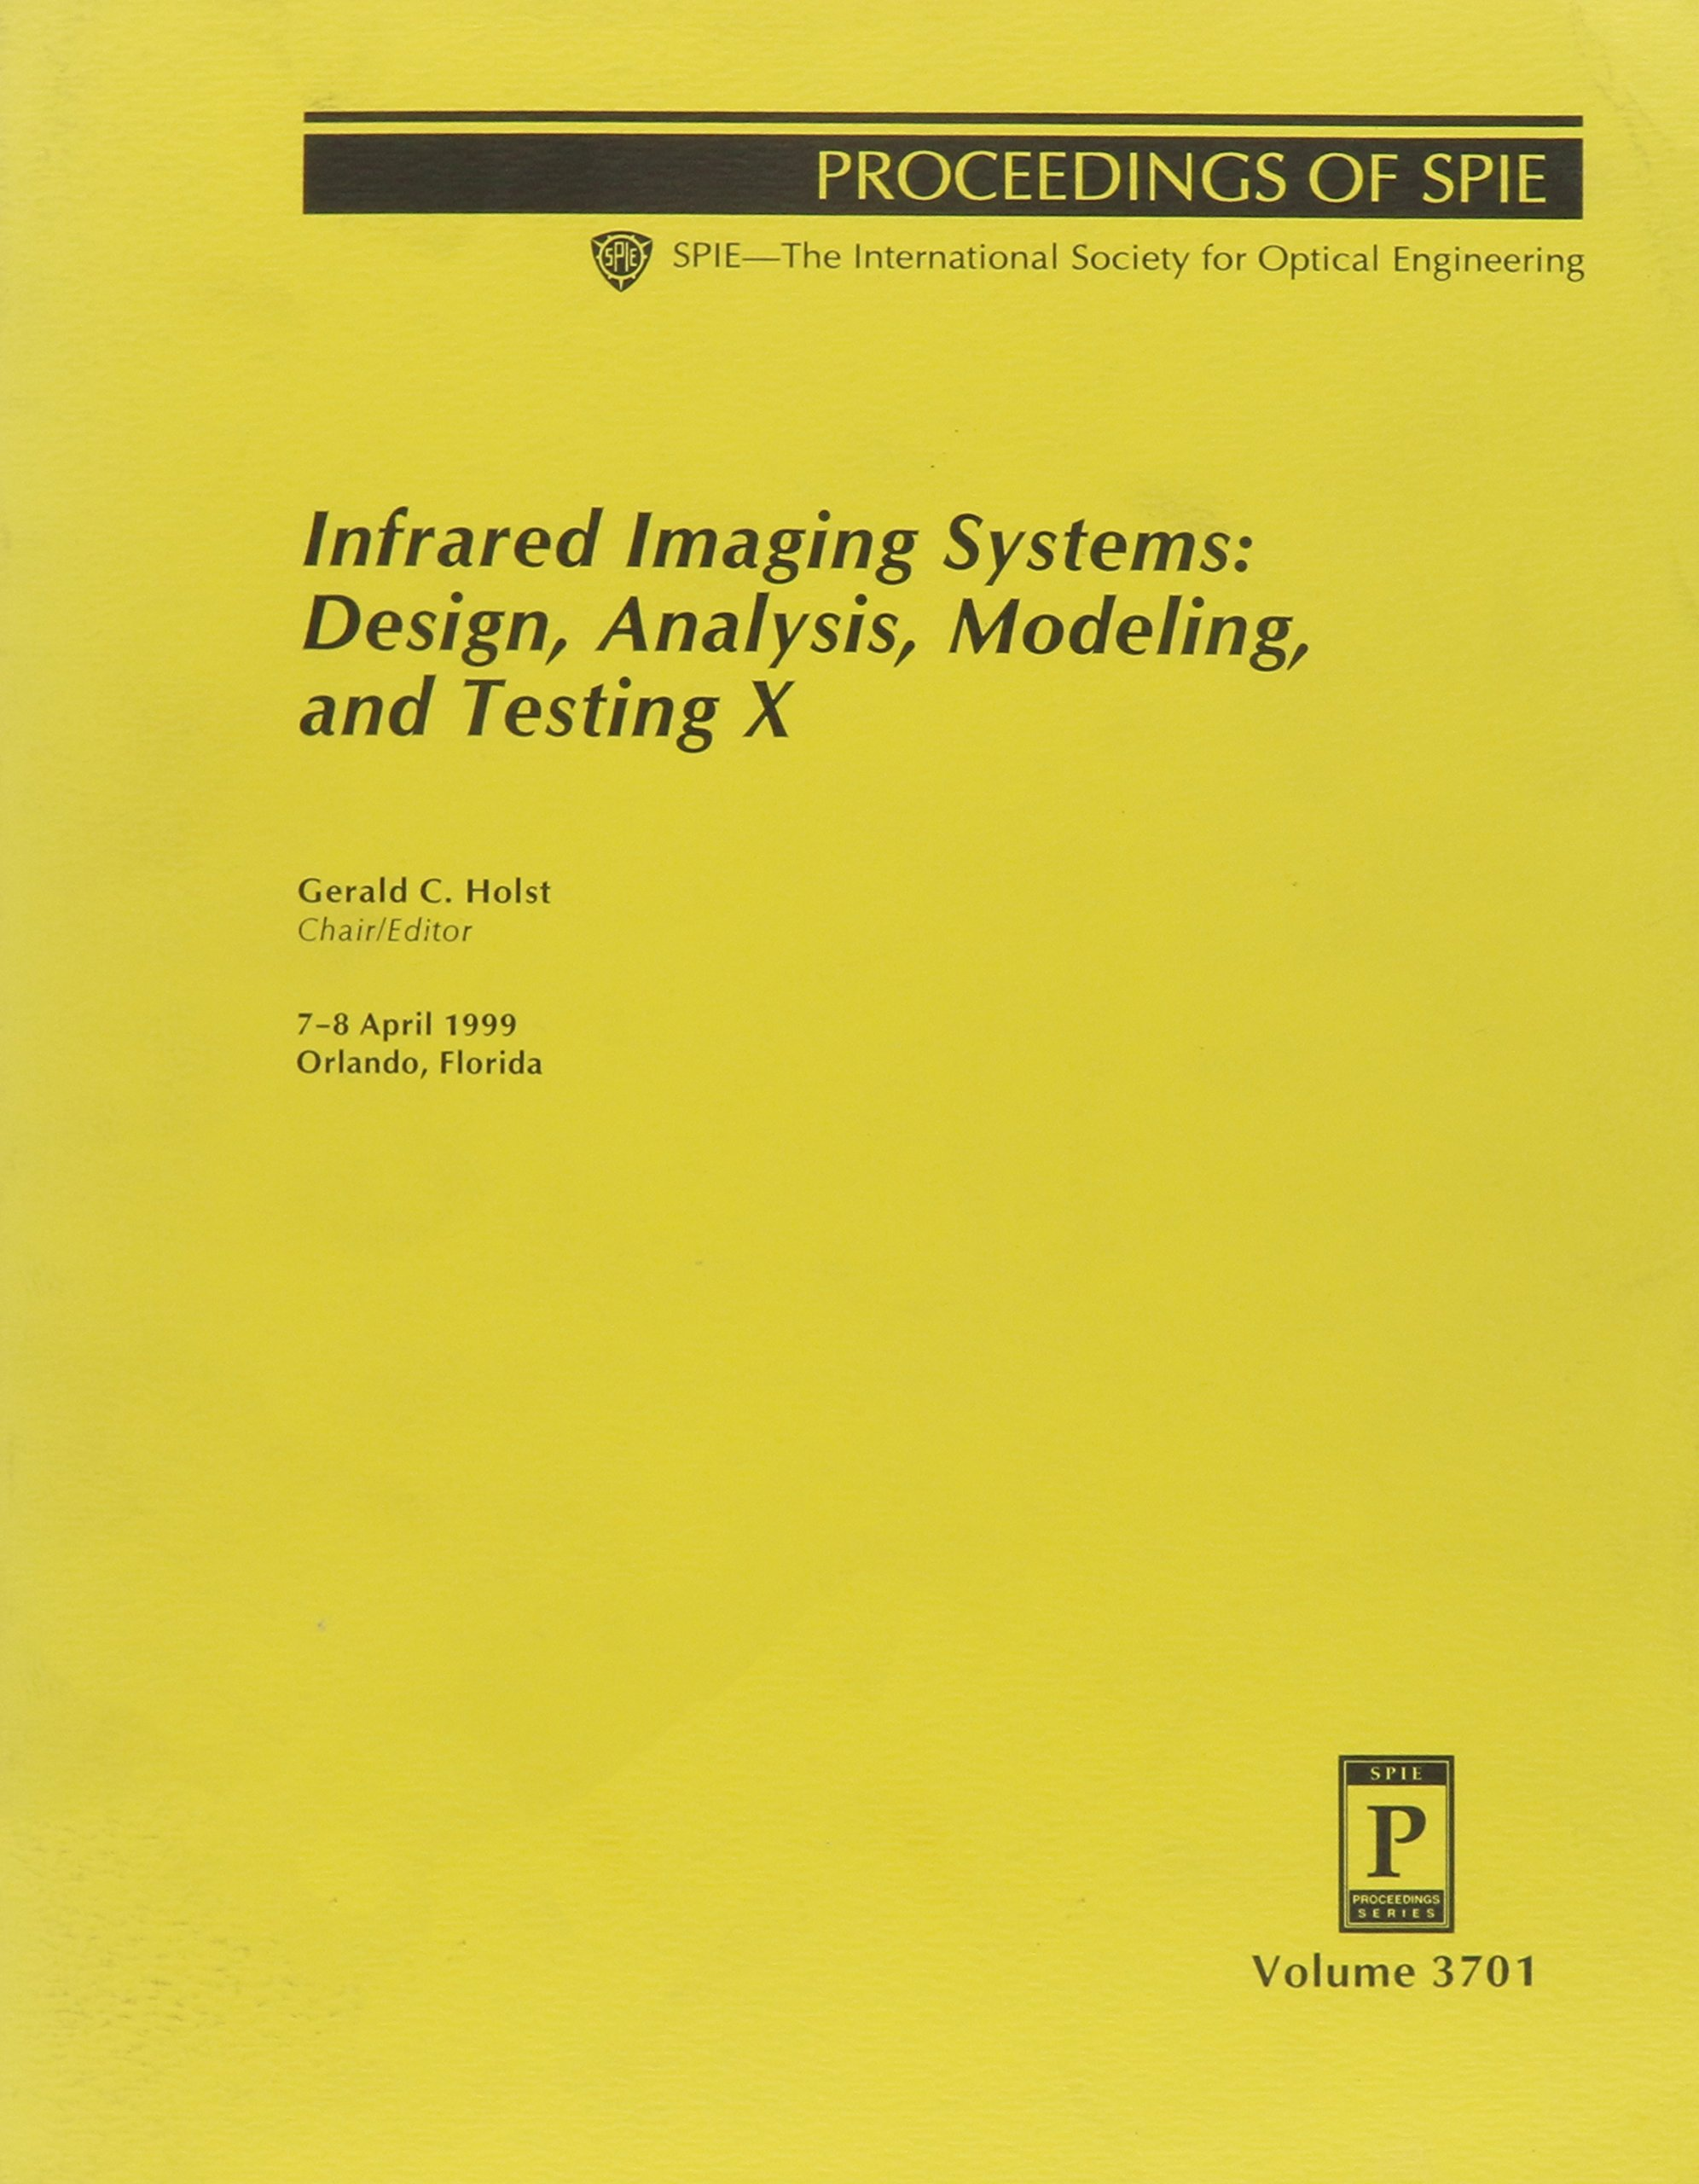 Infrared Imaging Systems Design Analysis Modeling and Testing XX